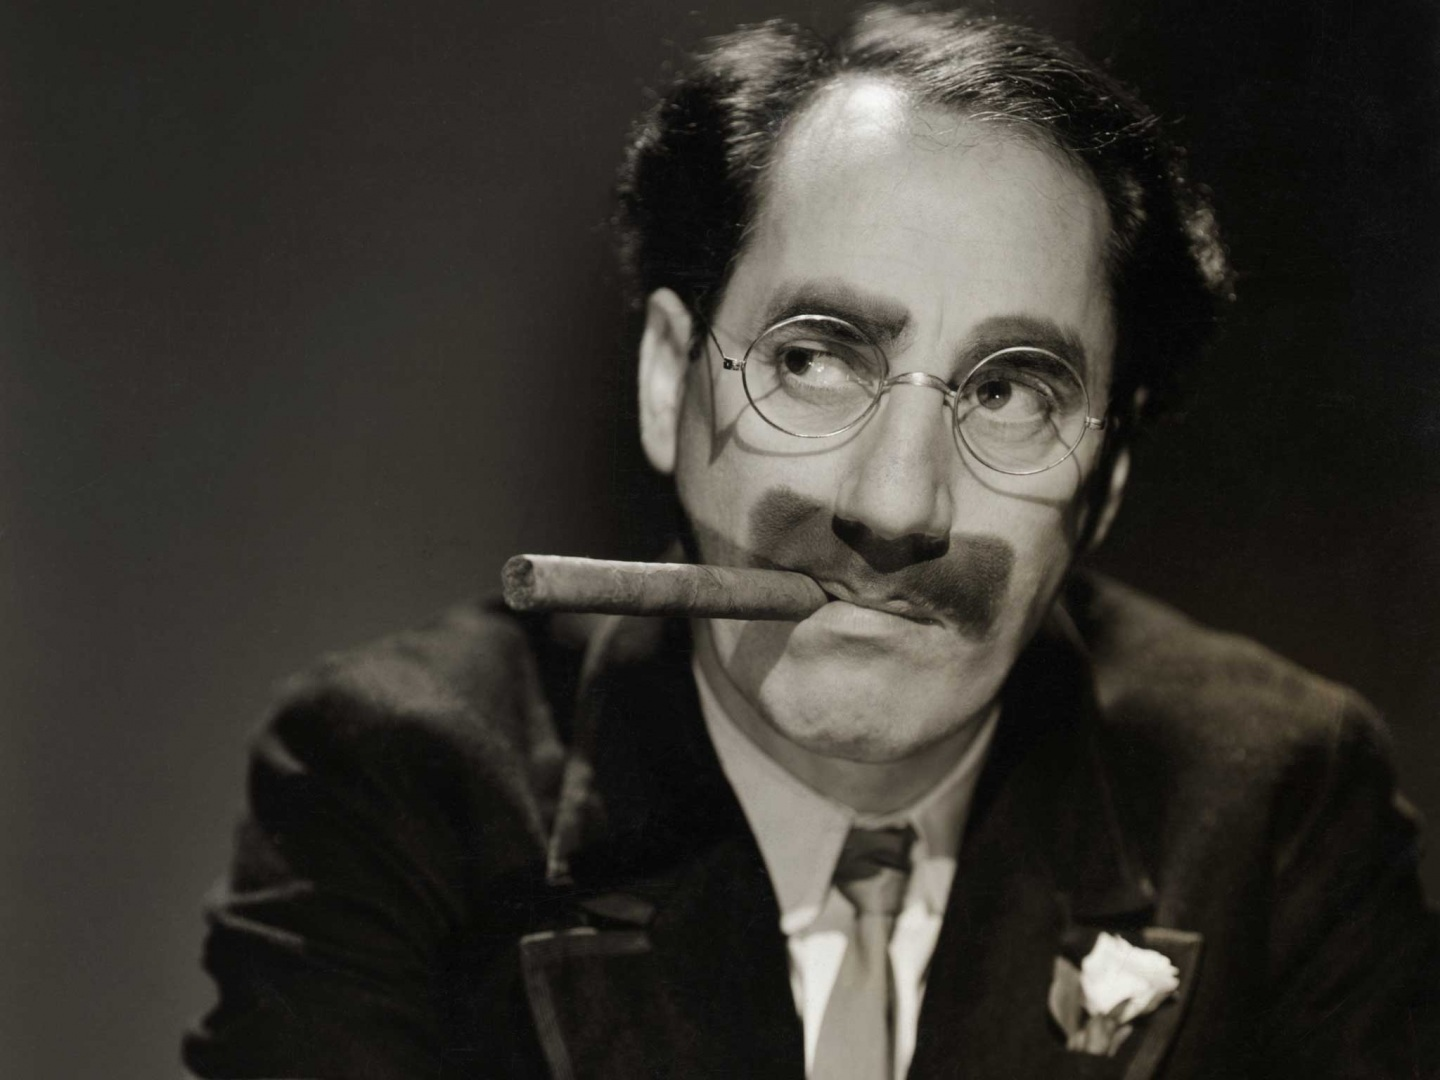 1440x1080 - Groucho Marx Wallpapers 27